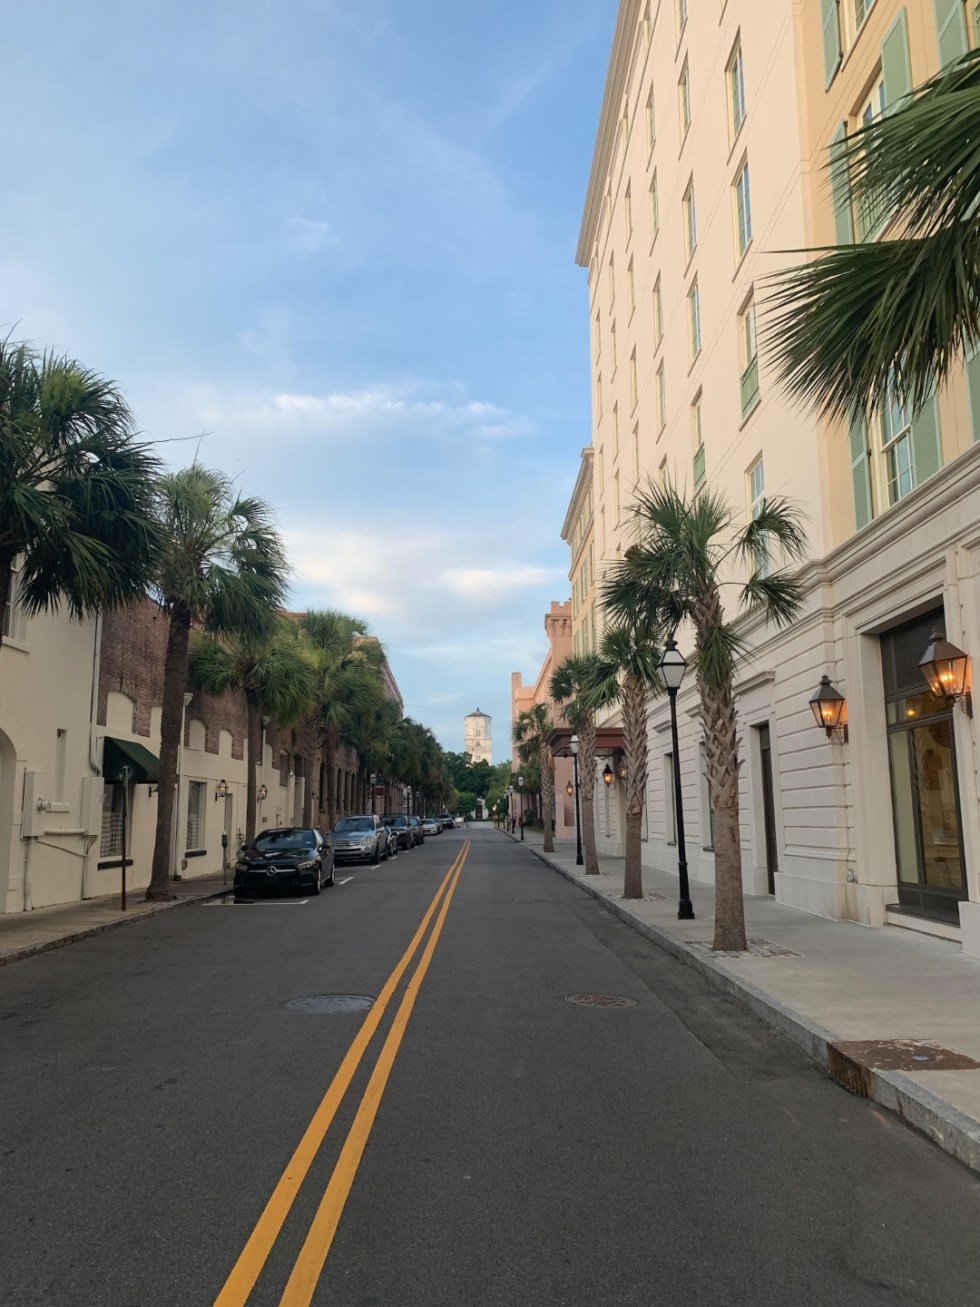 Travel Tips for Staying Safe & Healthy by popular North Carolina travel blog, I'm Fixin' To: image of a palm tree lined street.